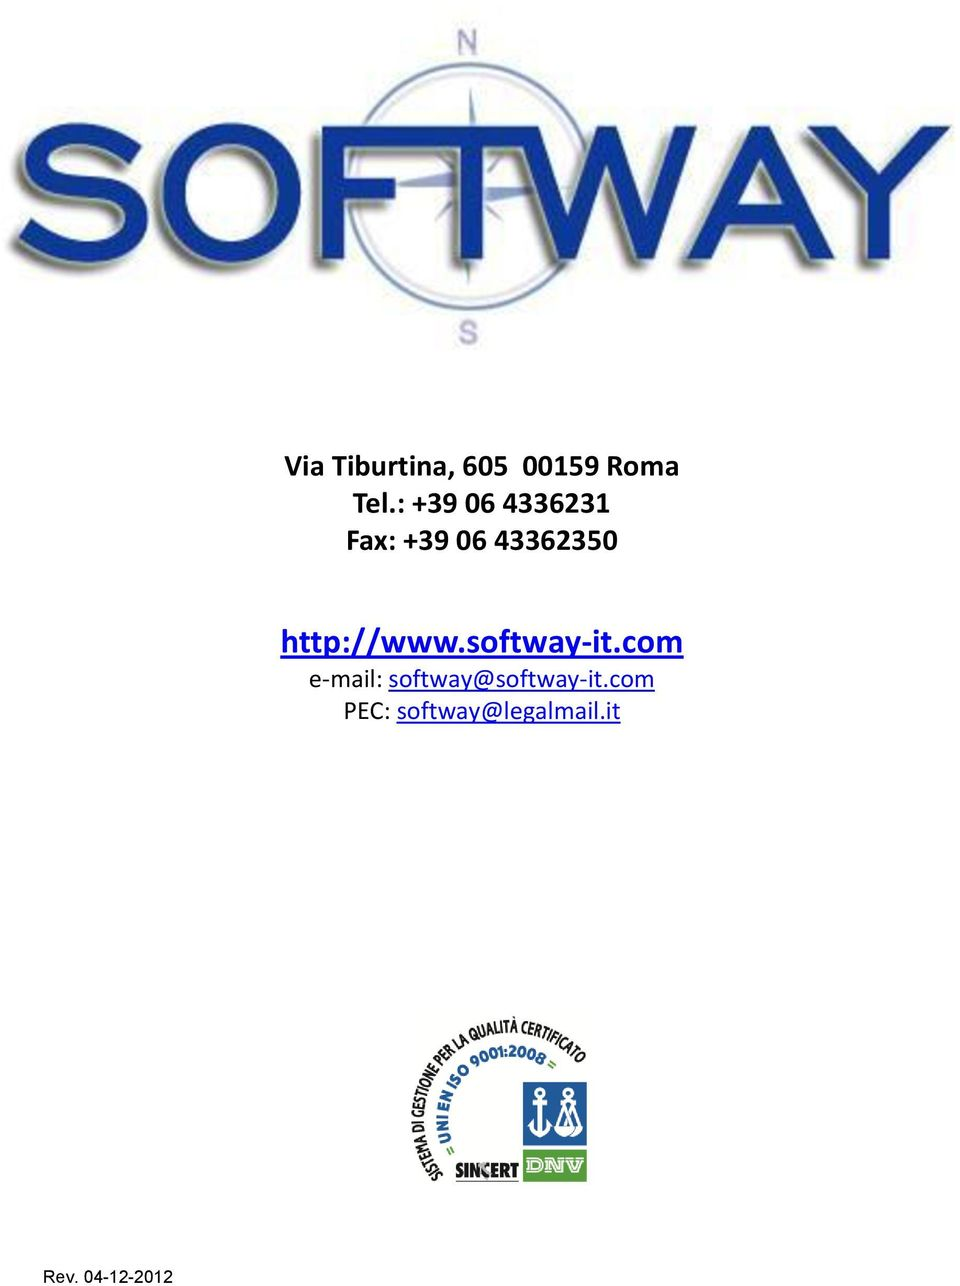 http://www.softway-it.